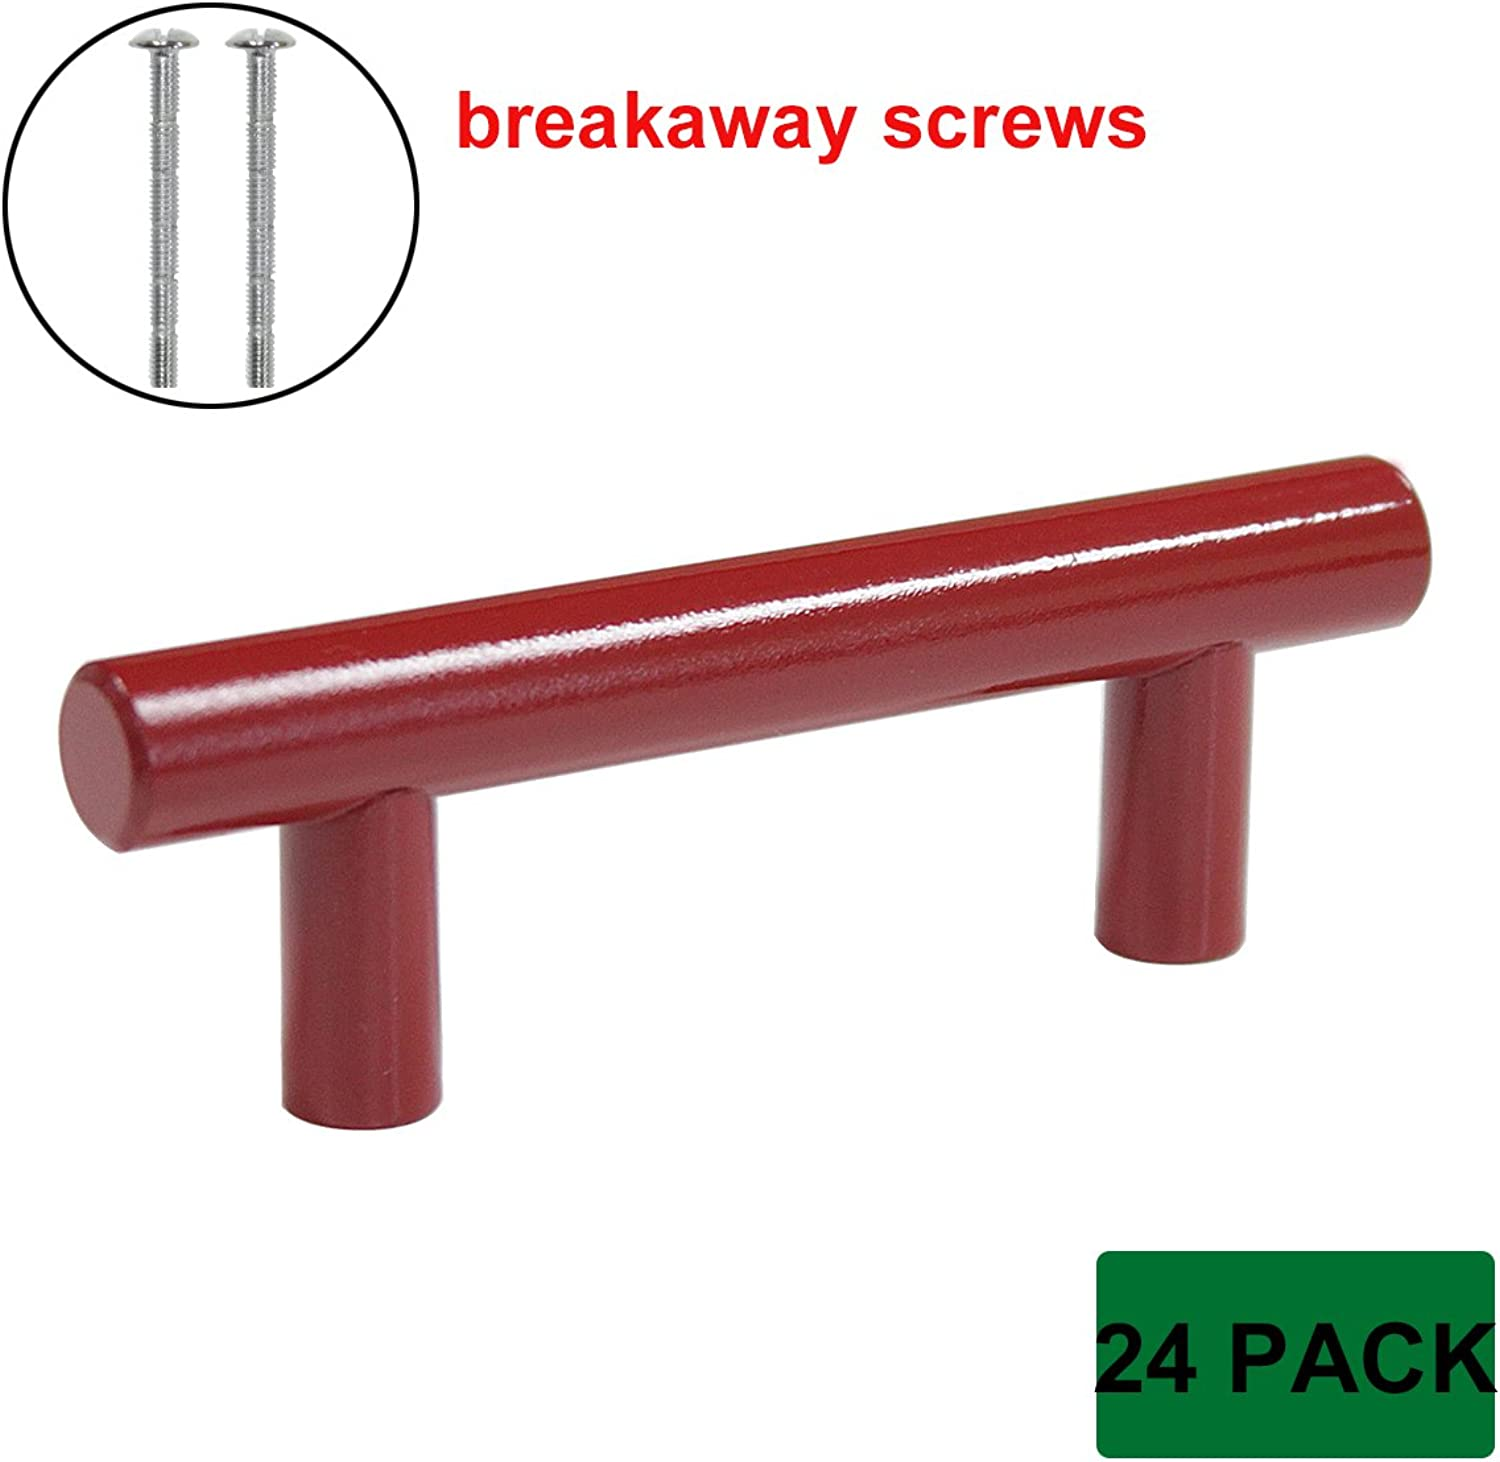 Probrico Modern Cabinet Hardware Handle Pull Kitchen Cabinet T Bar Knobs and Pull Handles Red - 2-1 2  Hole Spacing - 24 Pack - Breakaway Screws Included